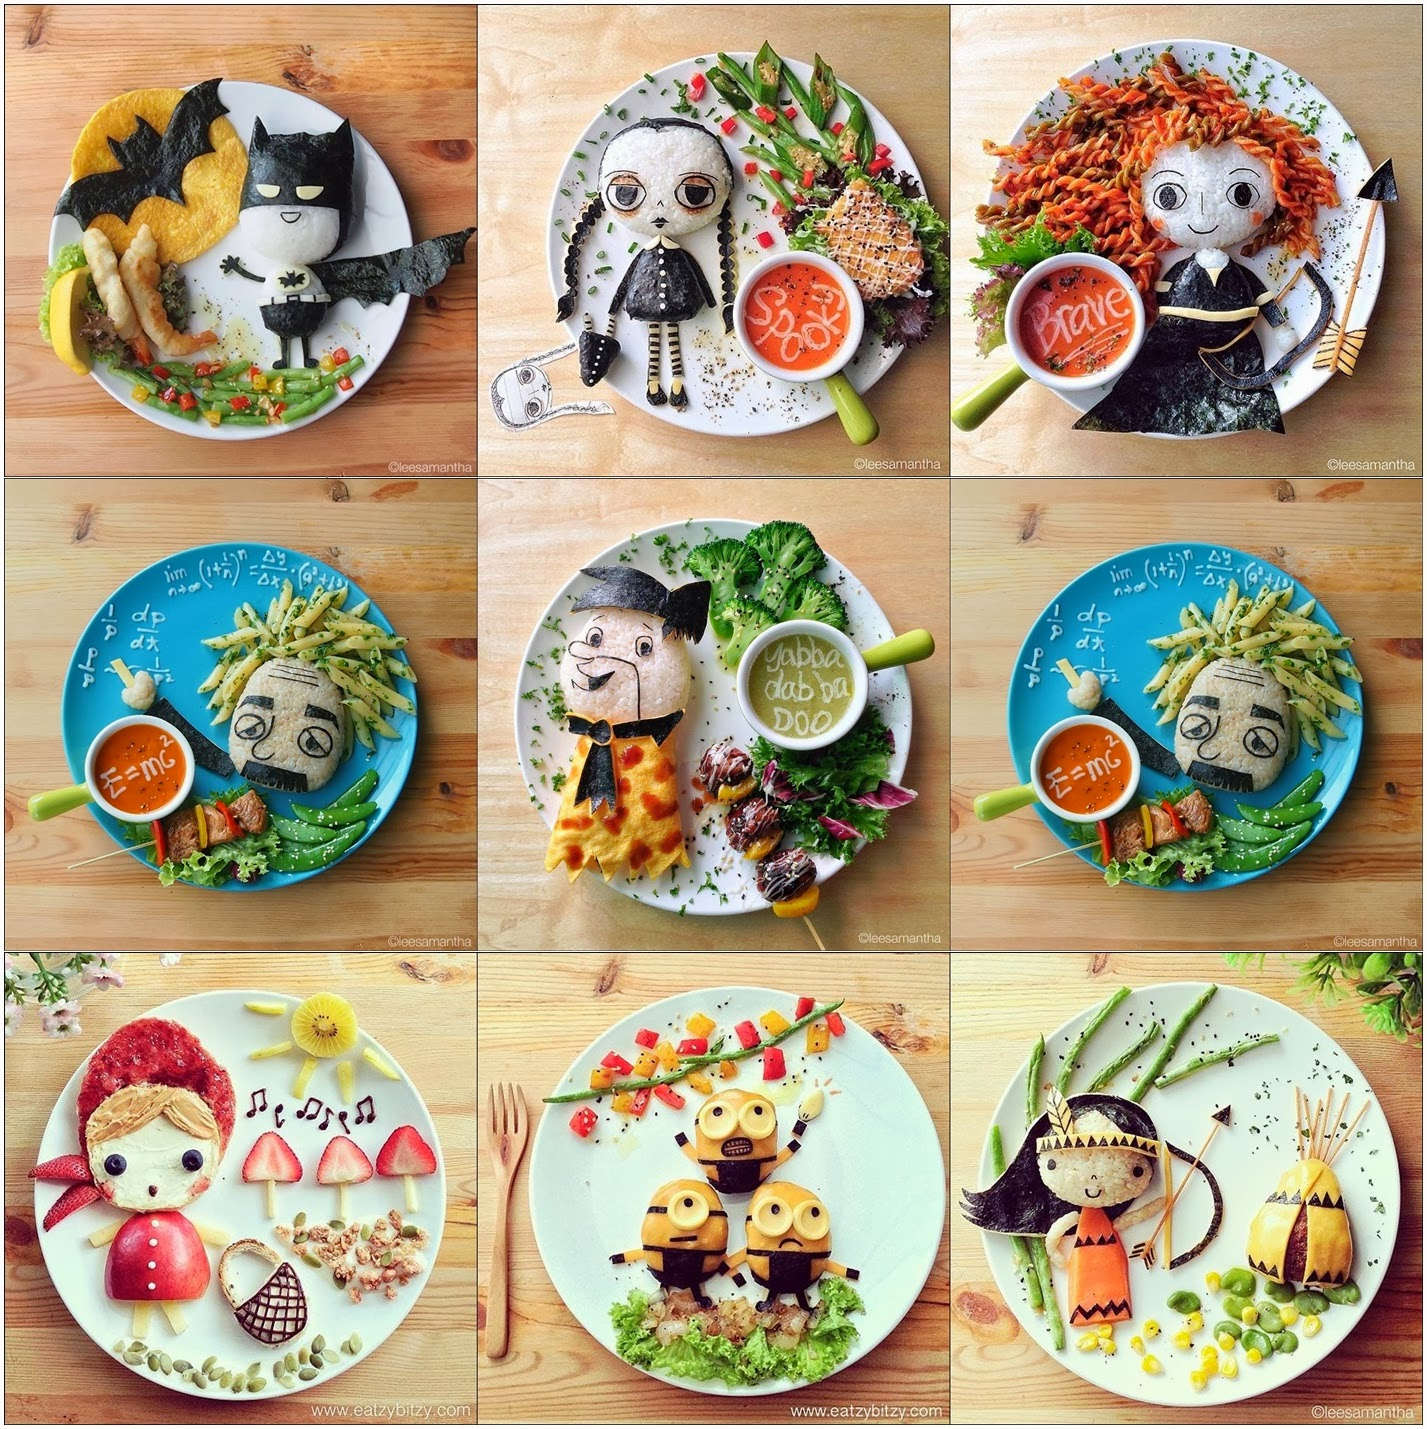 Kids Eat Right - Food-Art-Ideas-that-Kids-Love .jpg